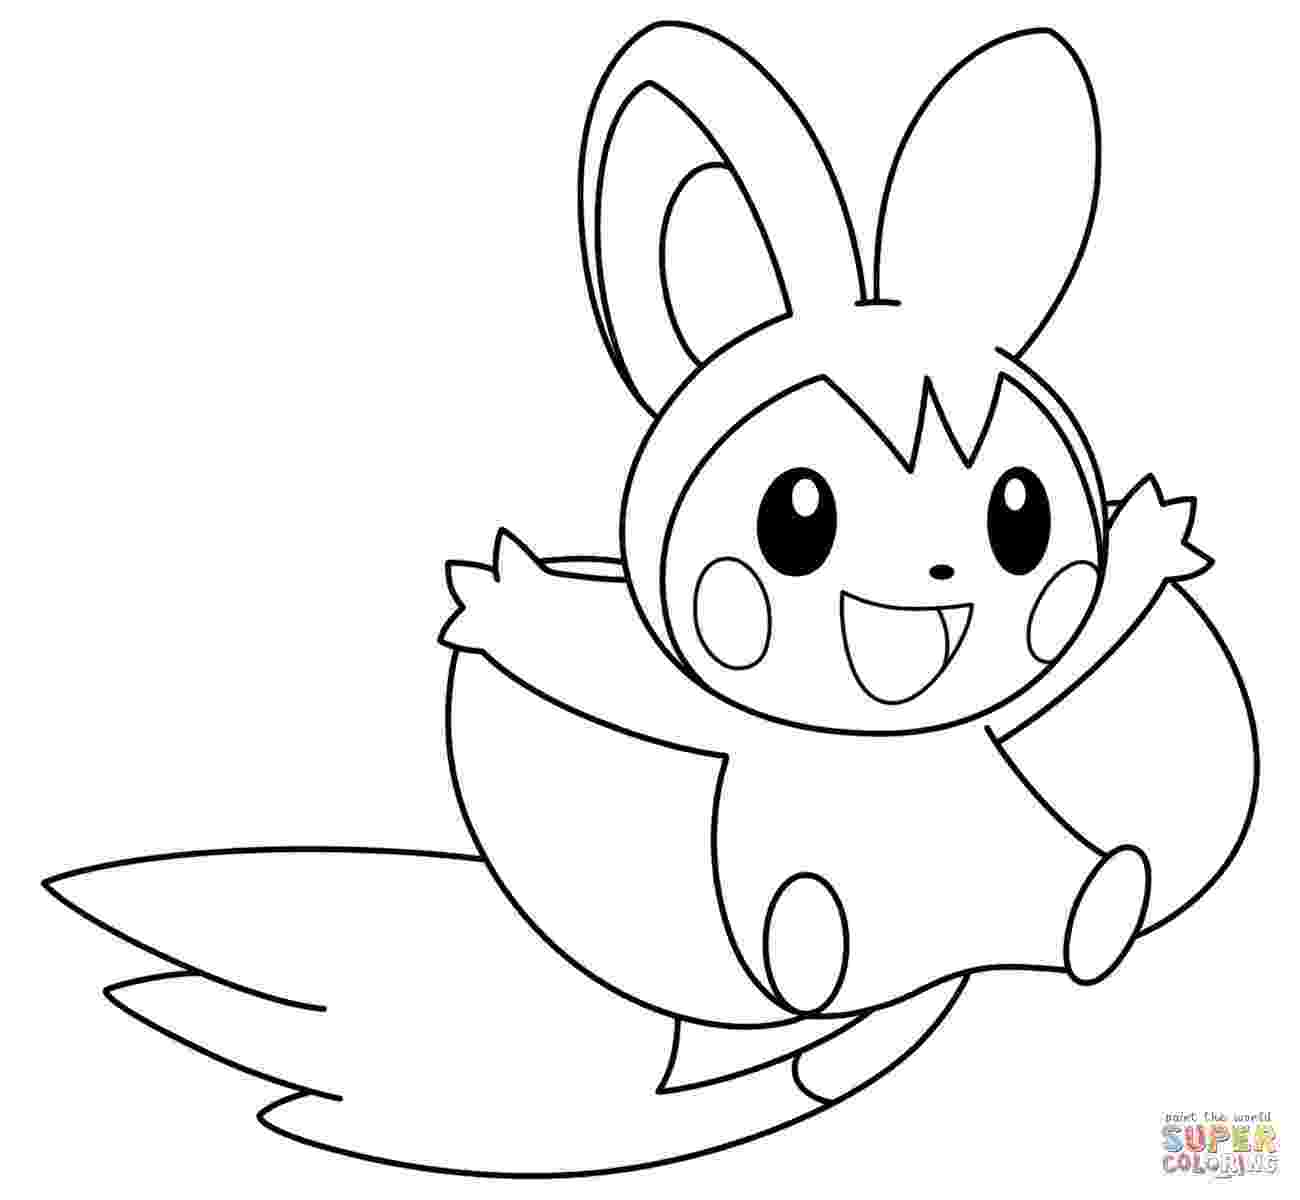 pokemon pitchers bulbasaur coloring pages free pokemon coloring pages pitchers pokemon